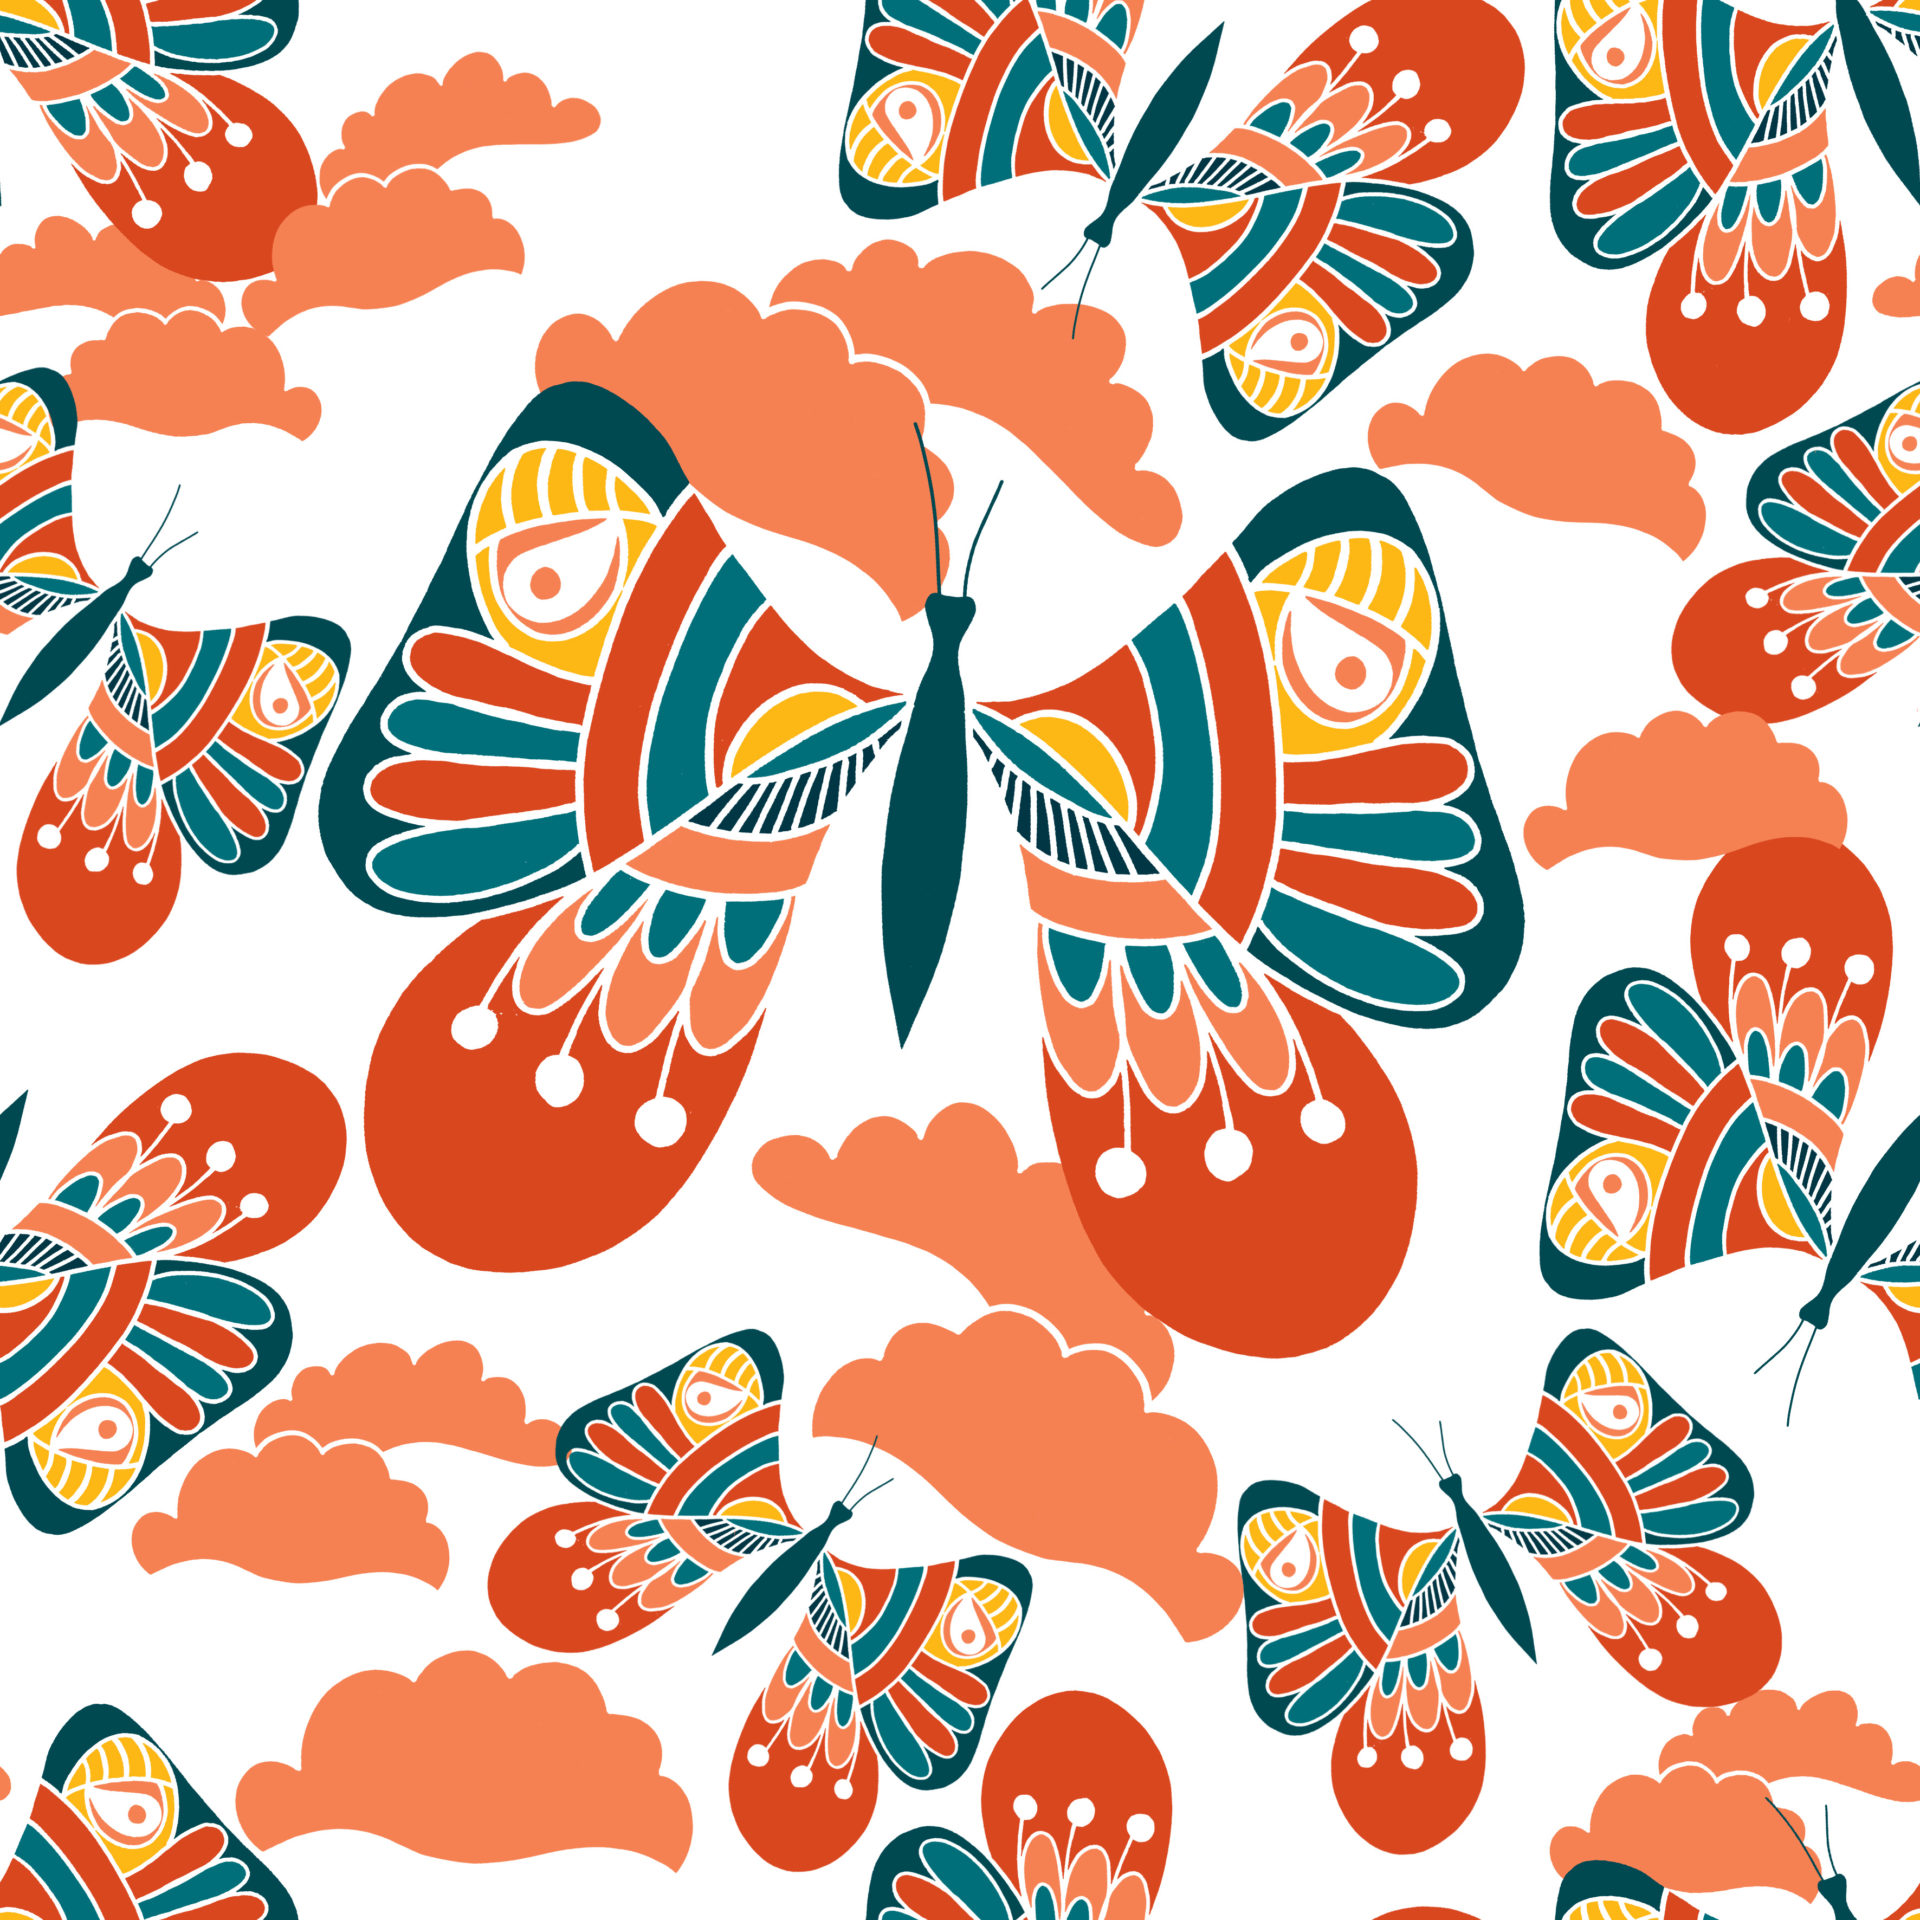 bright and colourful Butterfly design